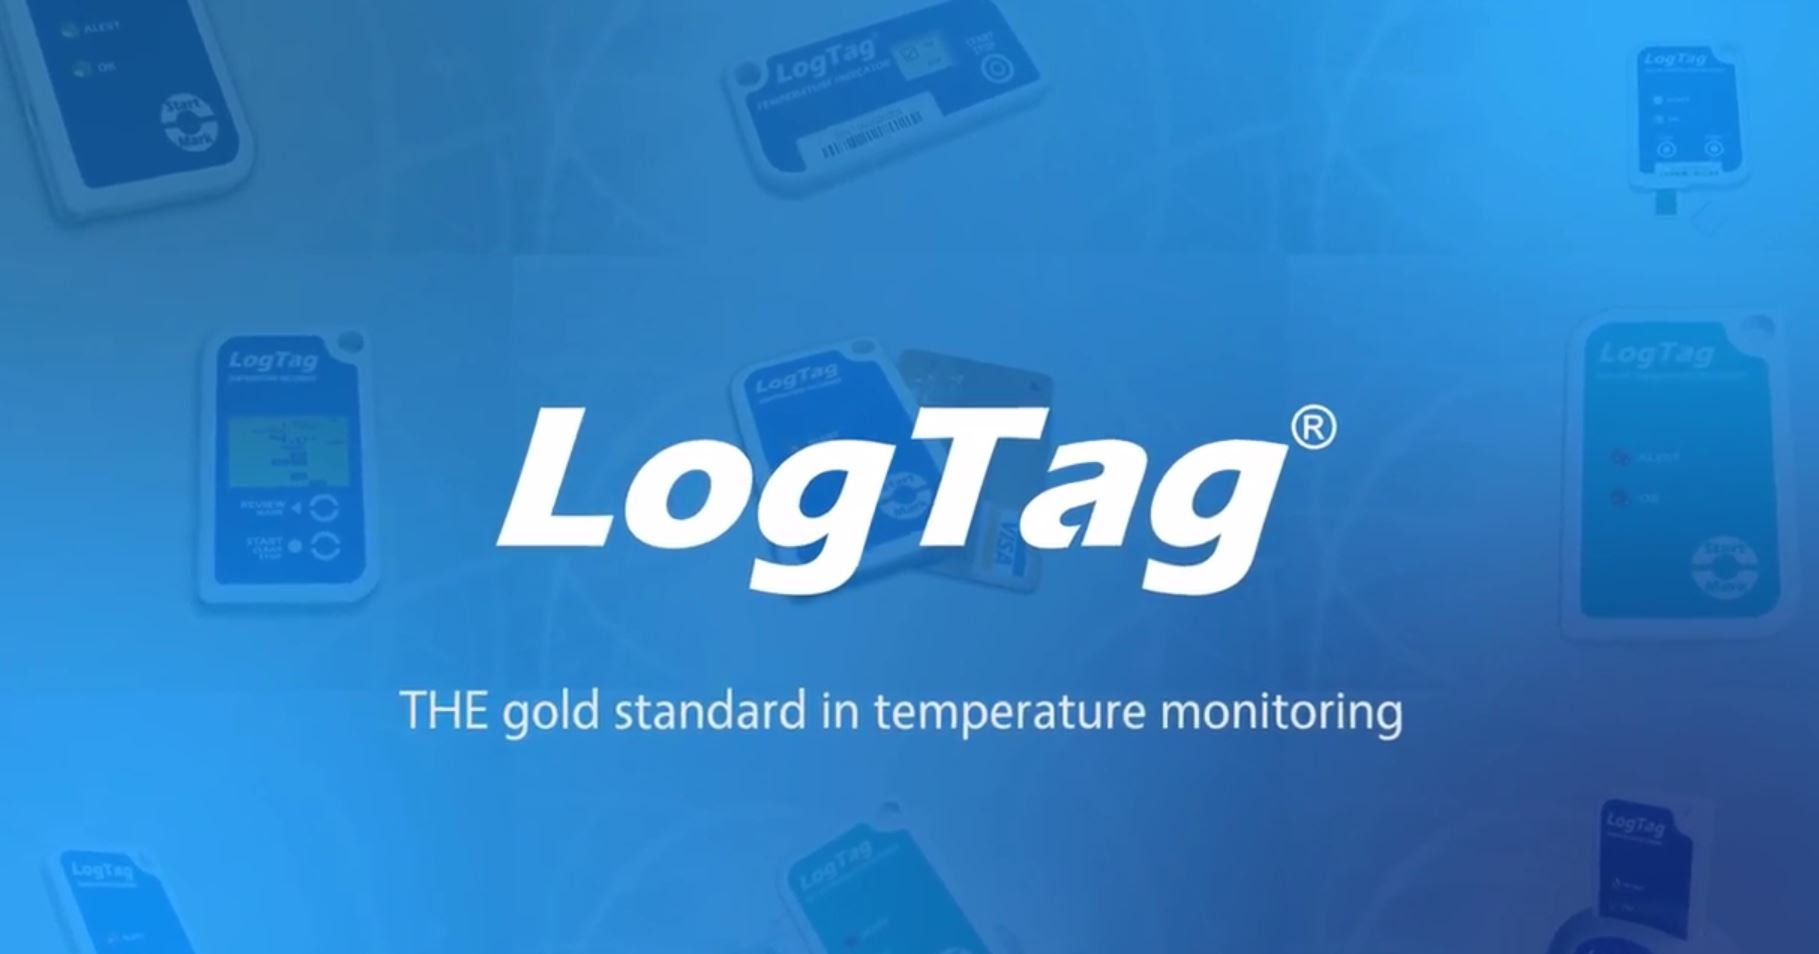 New Certificate of Accuracy for LogTag Temperature Loggers